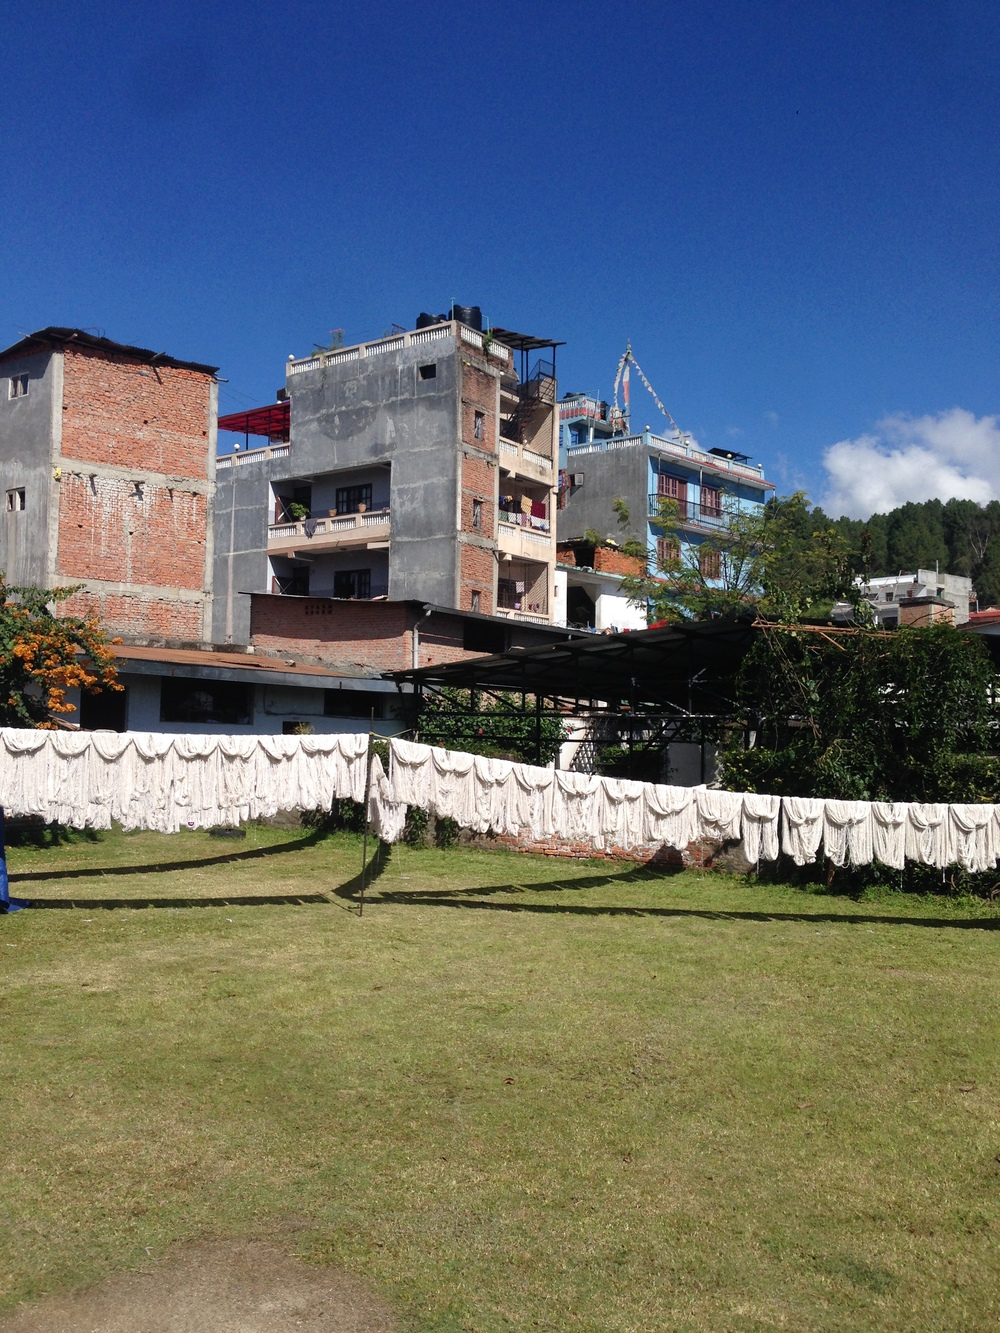 Drying wool in the sun